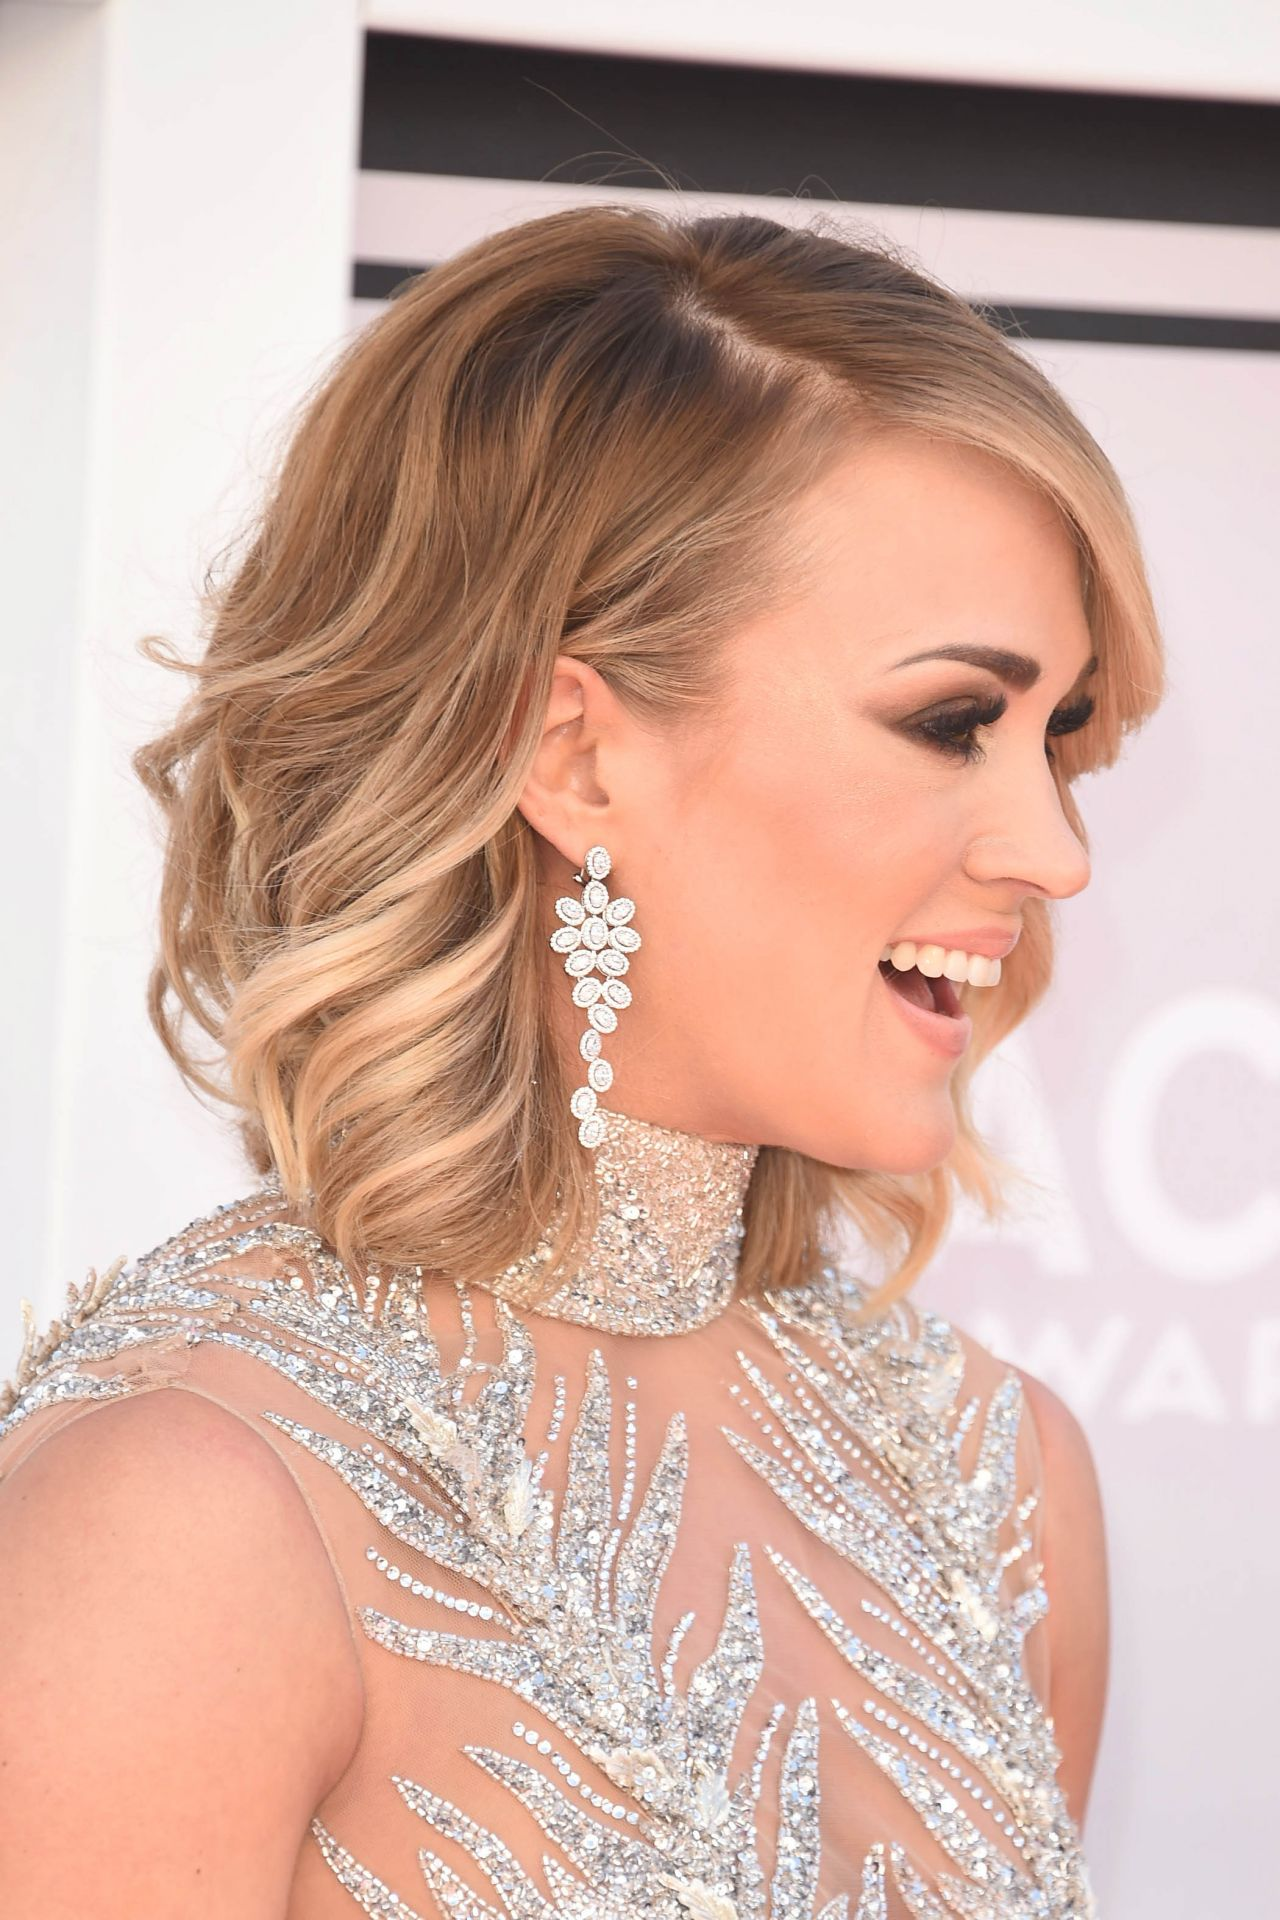 Carrie Underwood  Academy Of Country Music Awards 2017 in